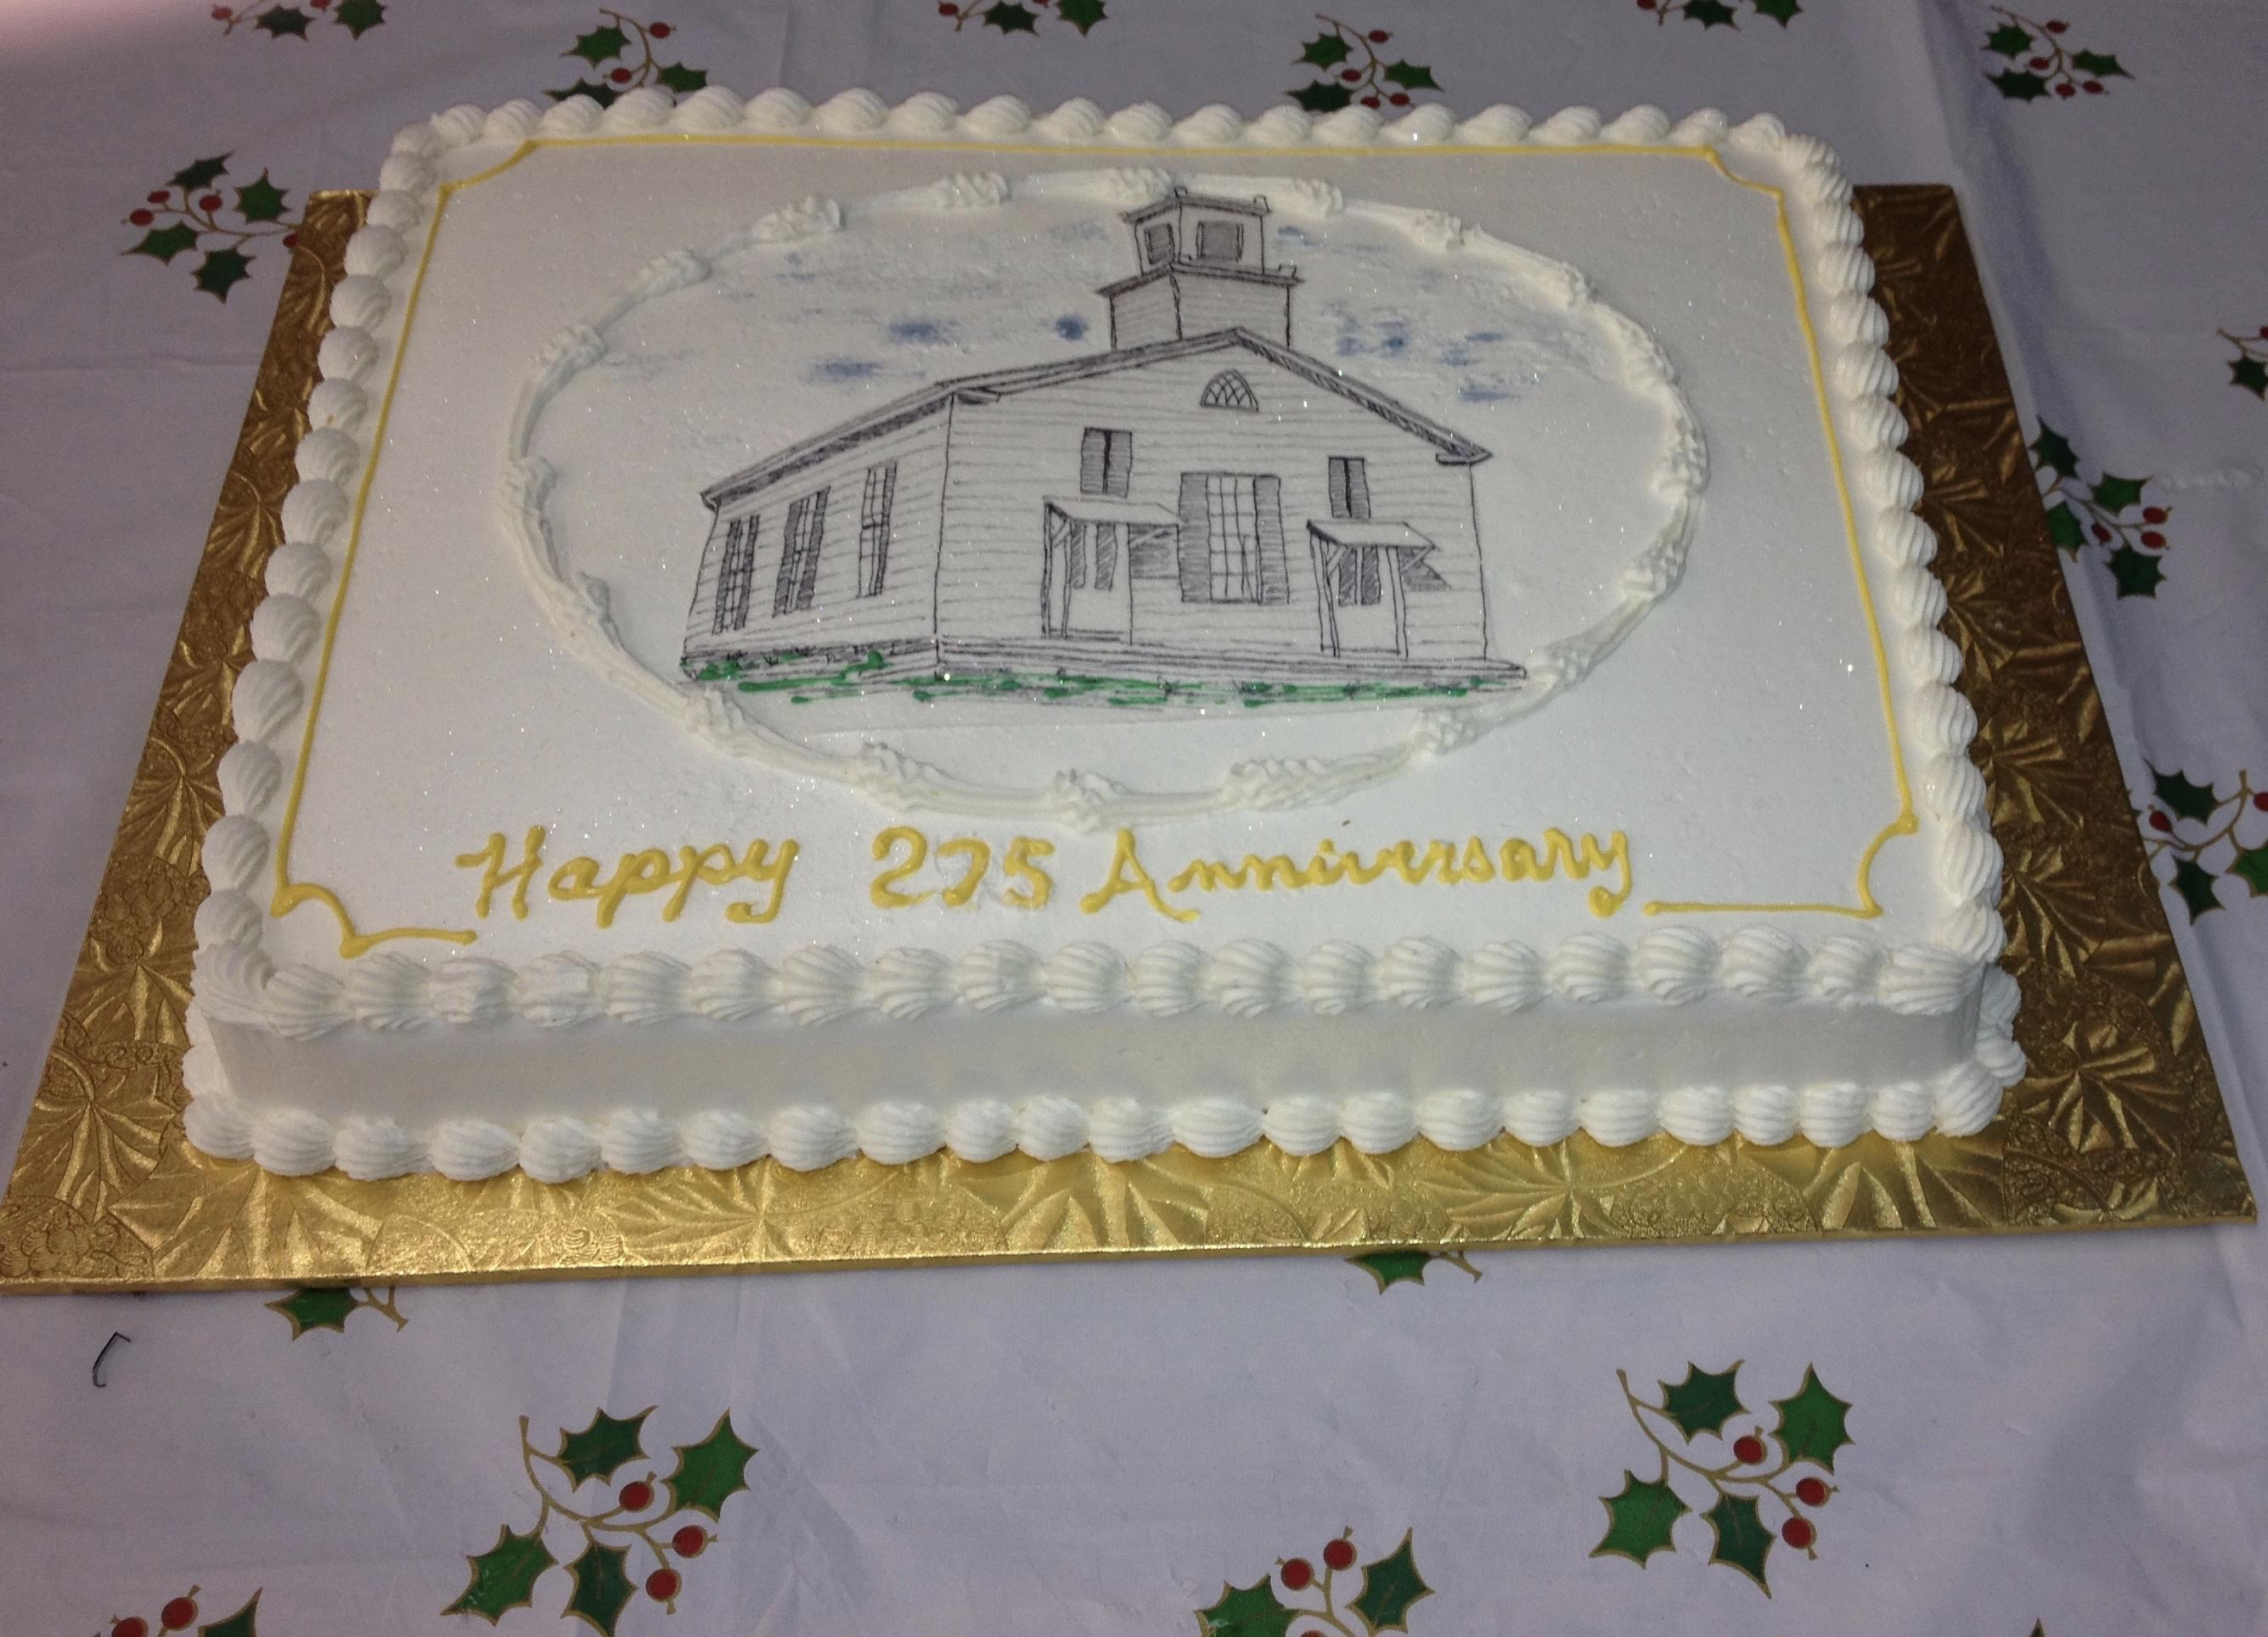 Church Anniversary Cake Images : The Congregational Church of Union - The People